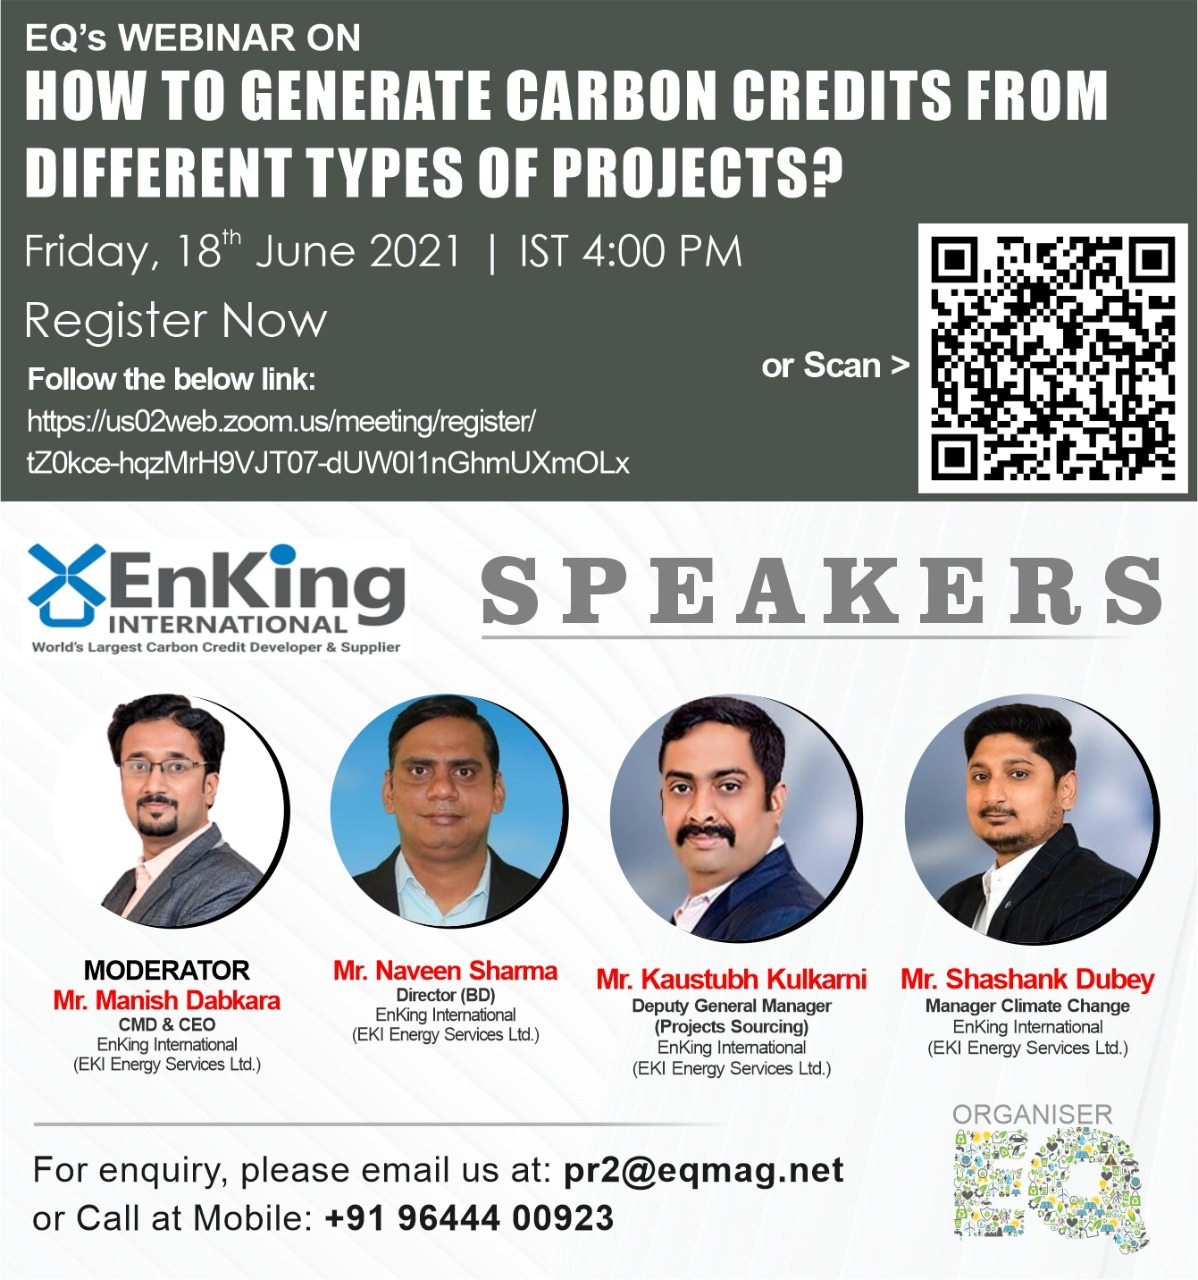 EQ Webinar on How To Generate Carbon Credits From Different Types of ProjectsDated – 18th June 2021 (Friday) from 04:00 PM Onwards….Register Now !!!